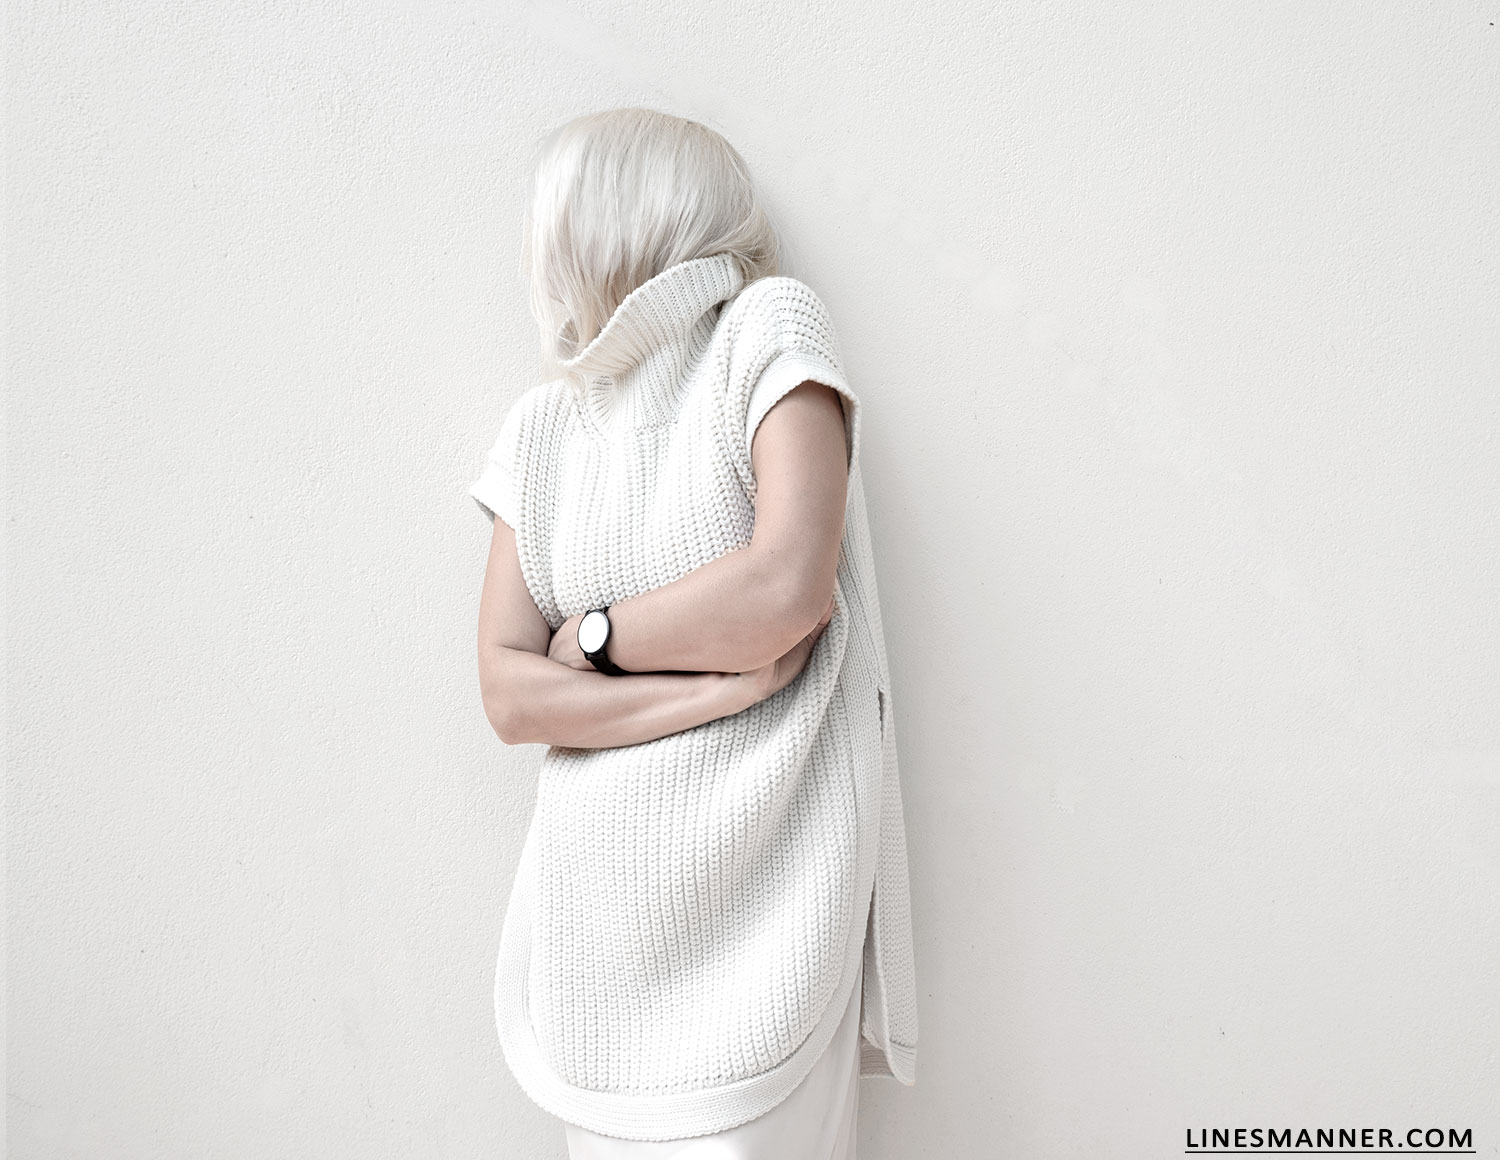 Lines-Manner-Sleeveless-Clean-Minimal-Effortless-Neutrals-Whiteout-Details-Essential-Staple-Statement_Piece-Knit-Sweater-Turtleneck-Trans_Seasonal-Larsson_And_Jennings-Warm-1